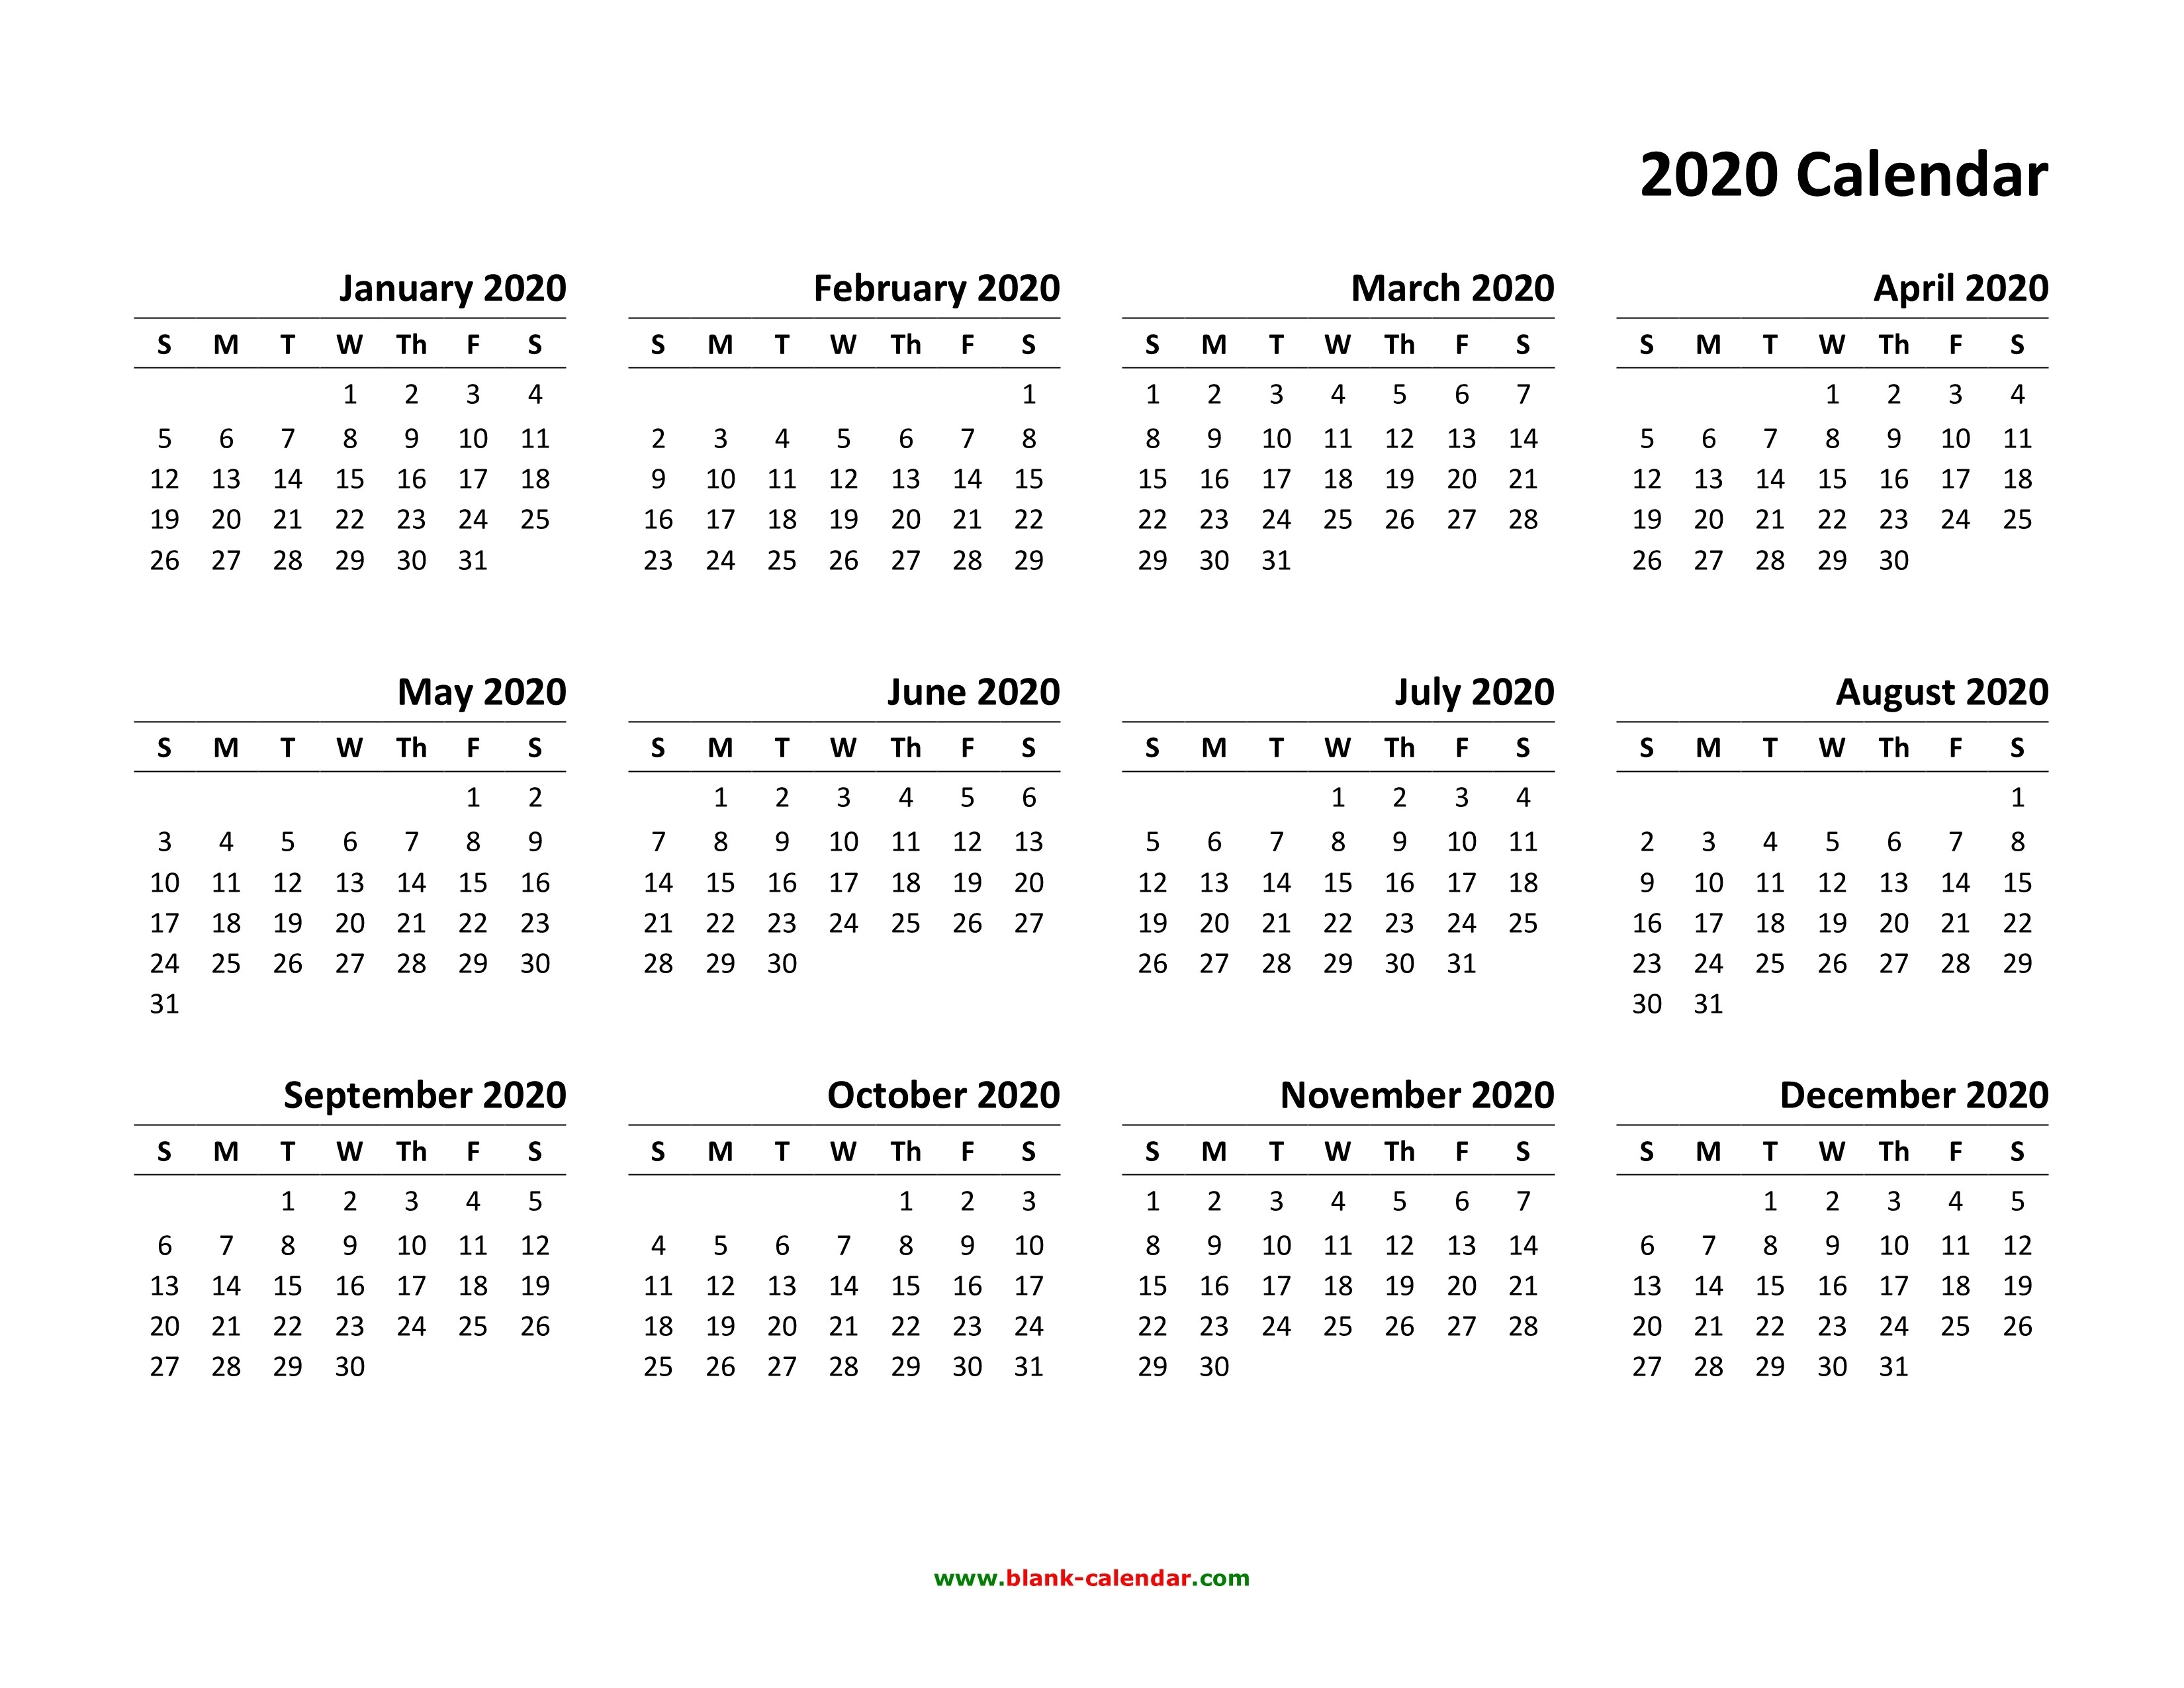 Yearly Calendar 2020 | Free Download And Print-2020-2020 Printable Calendar With No Holidays